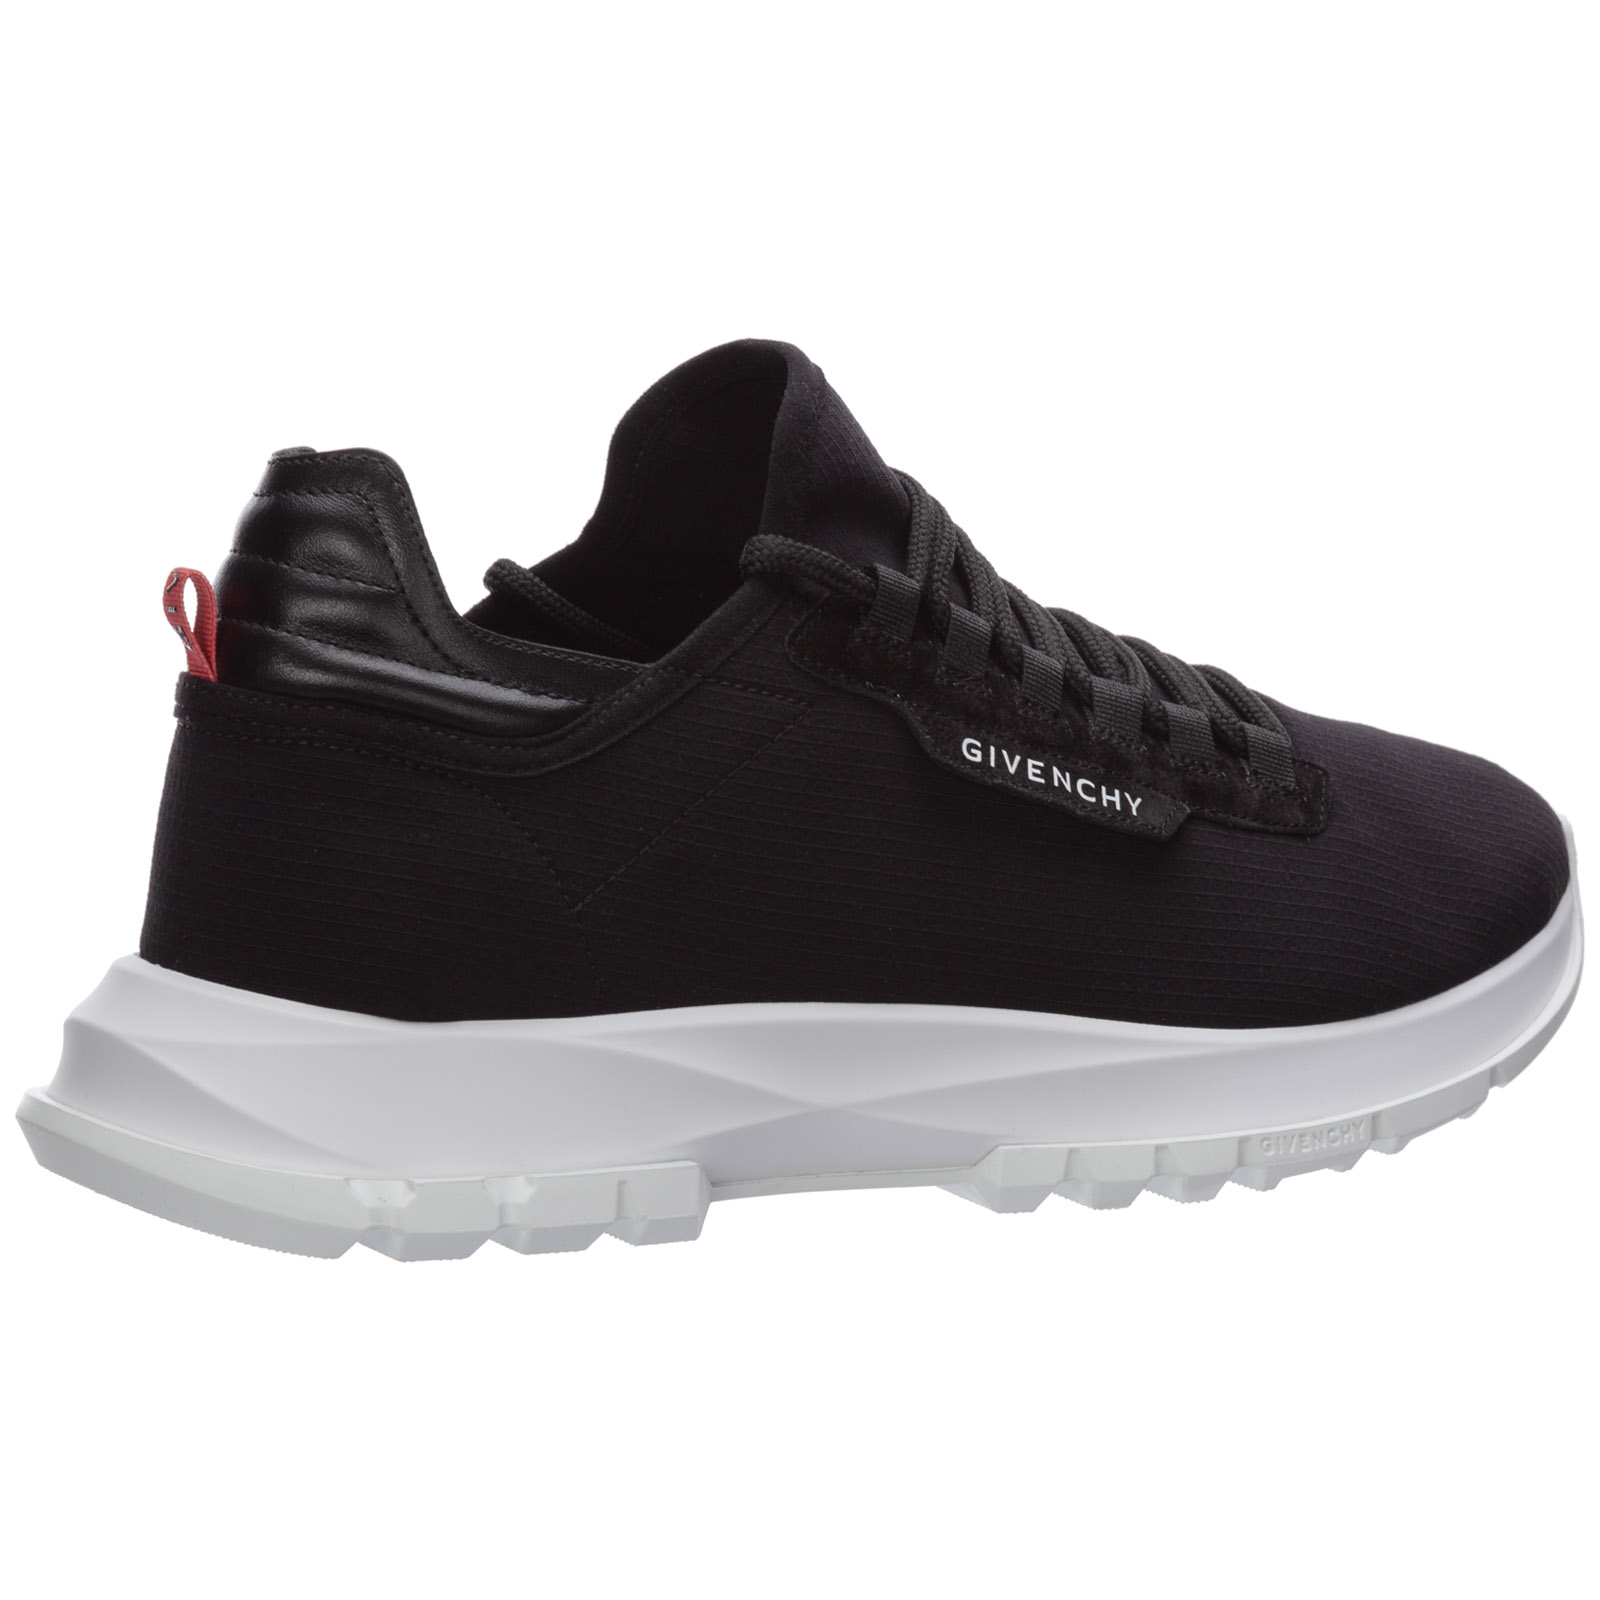 Men's shoes trainers sneakers  spectre